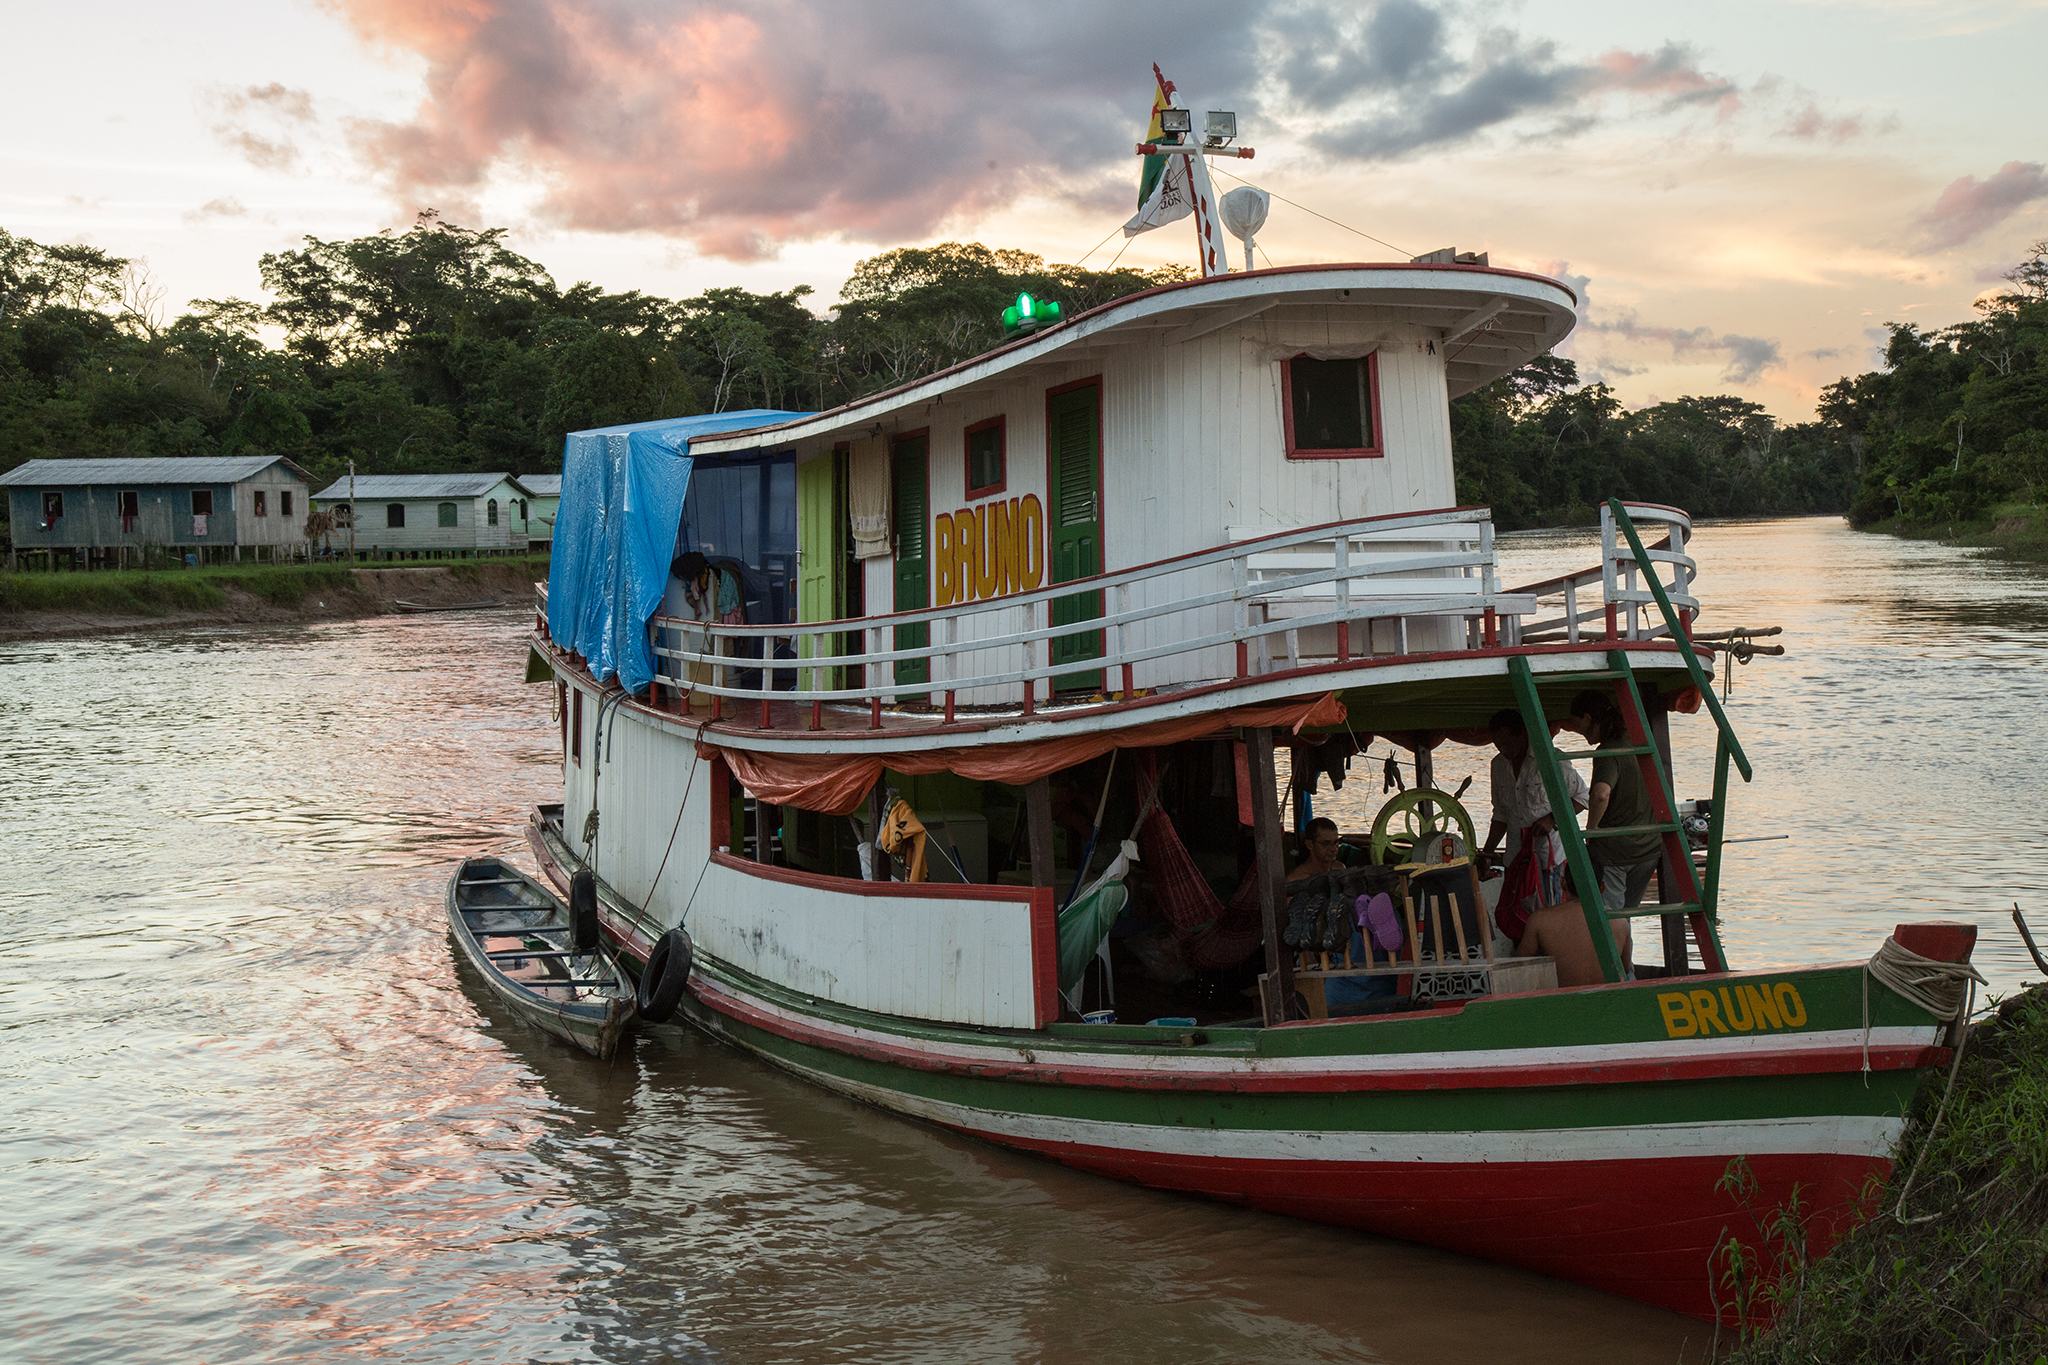 The houseboat which serves as a floating field station docks at Santa Catarina on the Rio Liberdade during the final weeks of the expedition. The expedition team spends two to five days in and around each community, surveying the surrounding forests and waterways for wildlife.